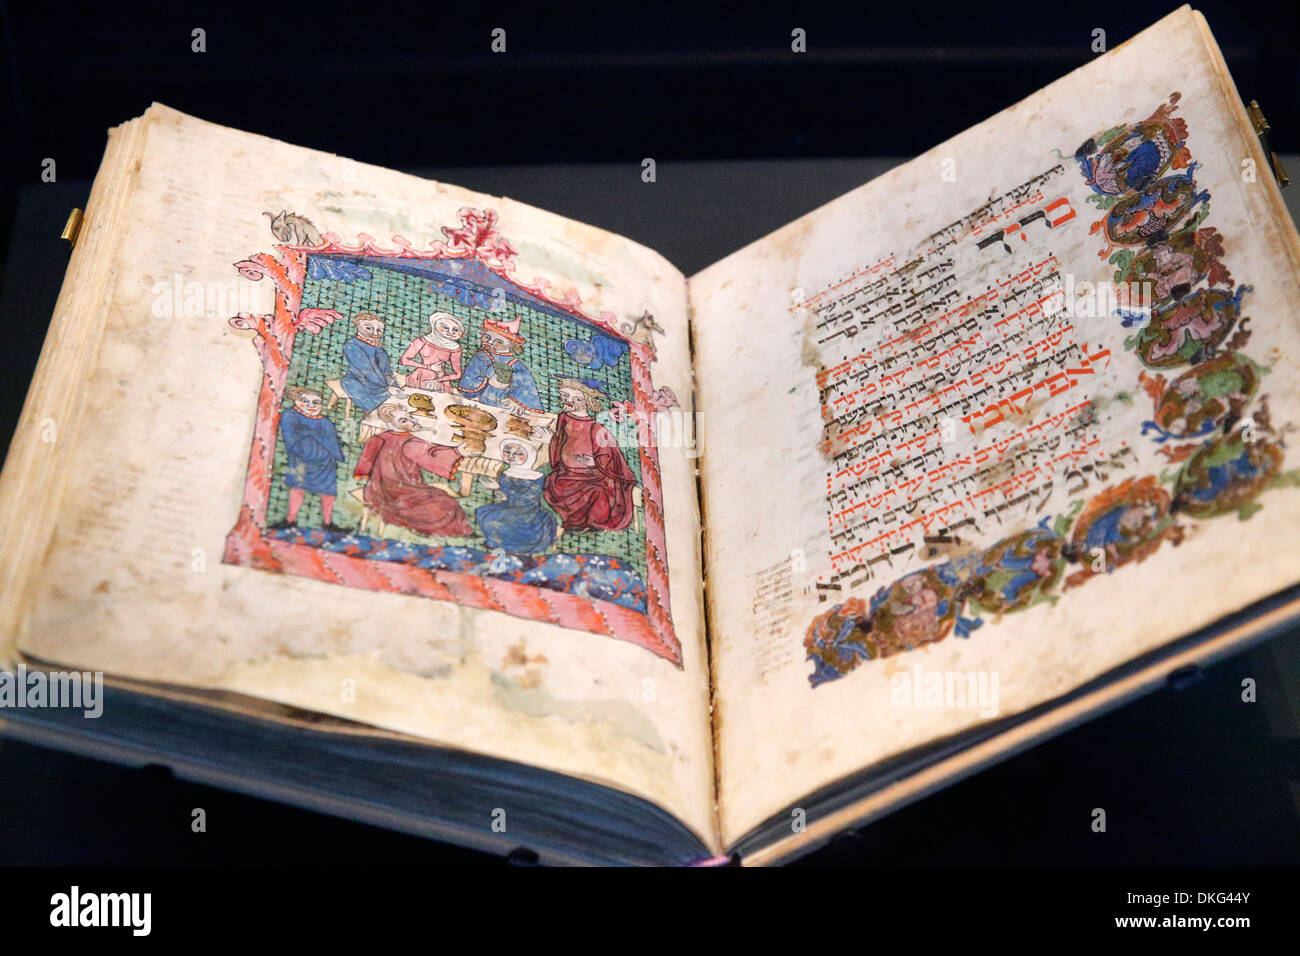 The Erna Michael Haggada from Germany dated 1400, The Israel Museum, Jerusalem, Israel, Middle East - Stock Image